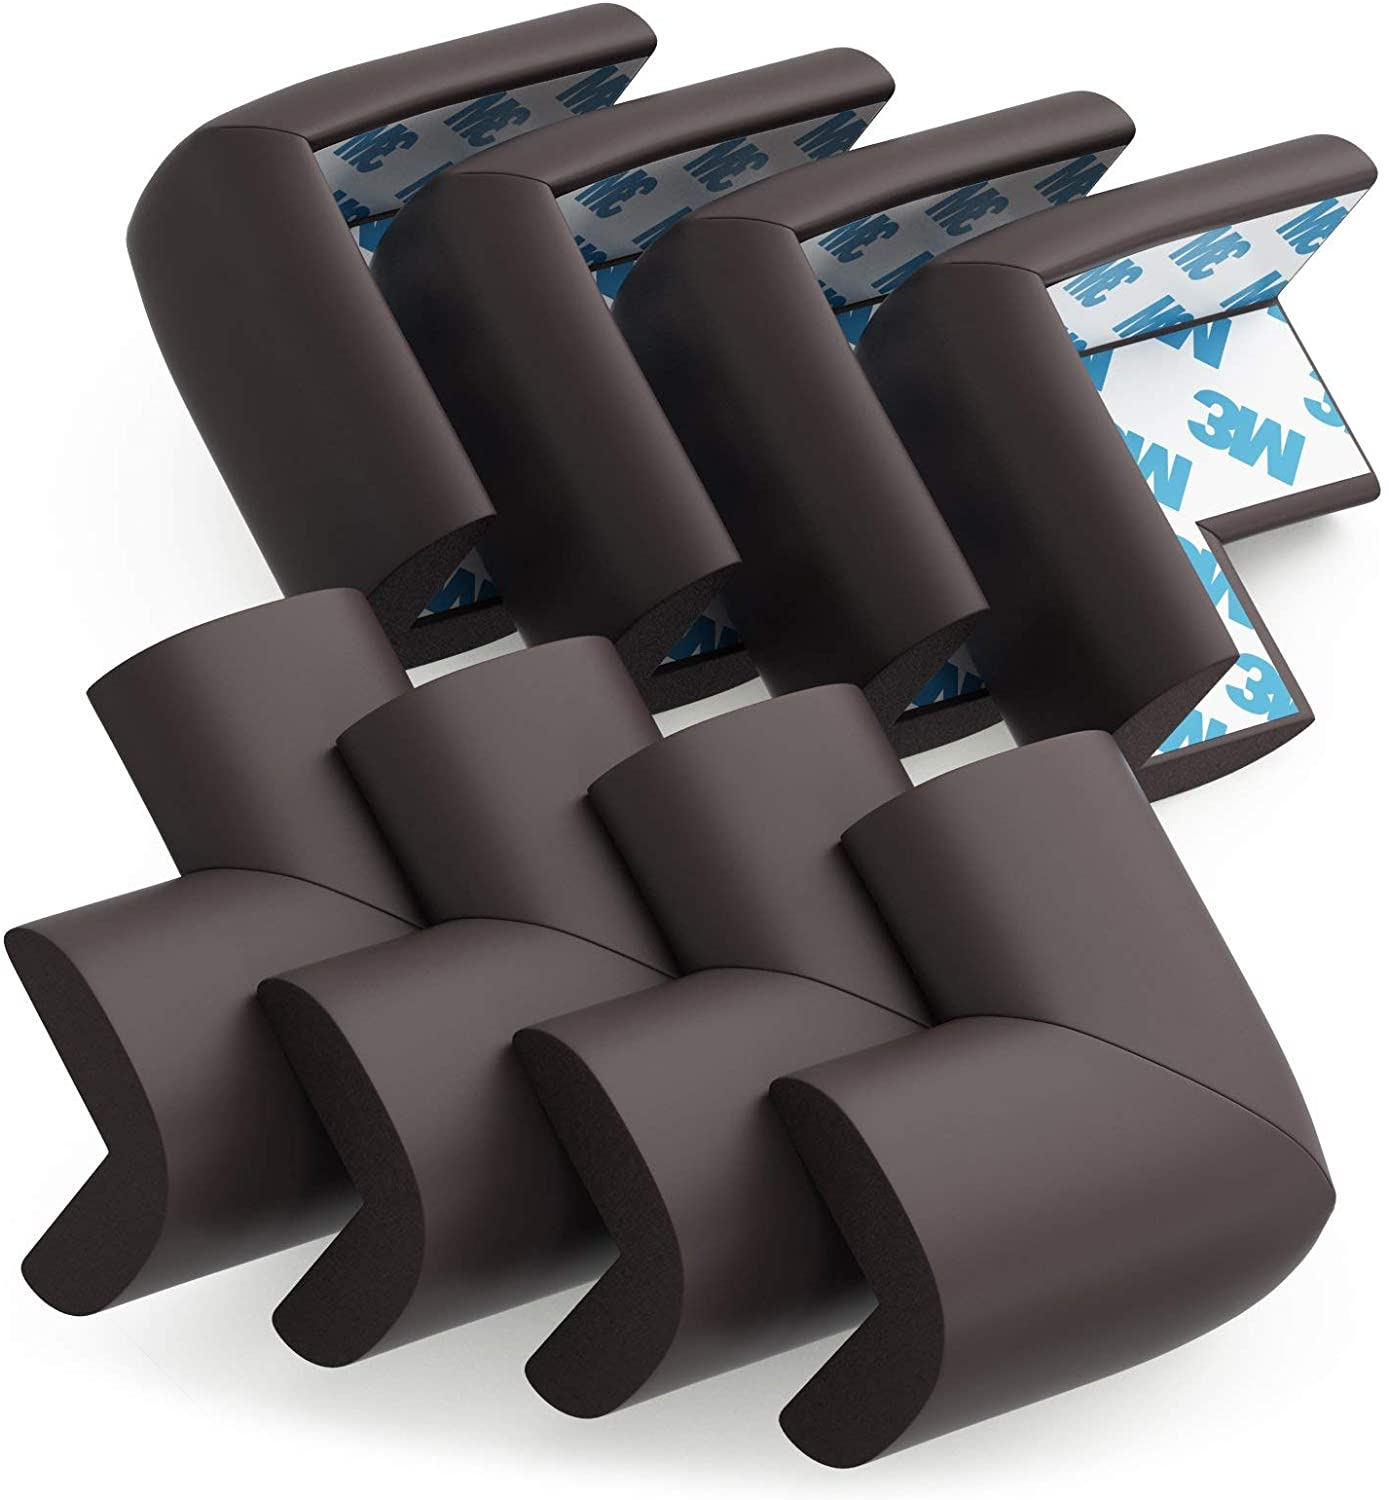 Baby Proofing Corner Guards Child Proof Sharp Table Corner Protectors 8 Pack Brown Amazon Ca Baby